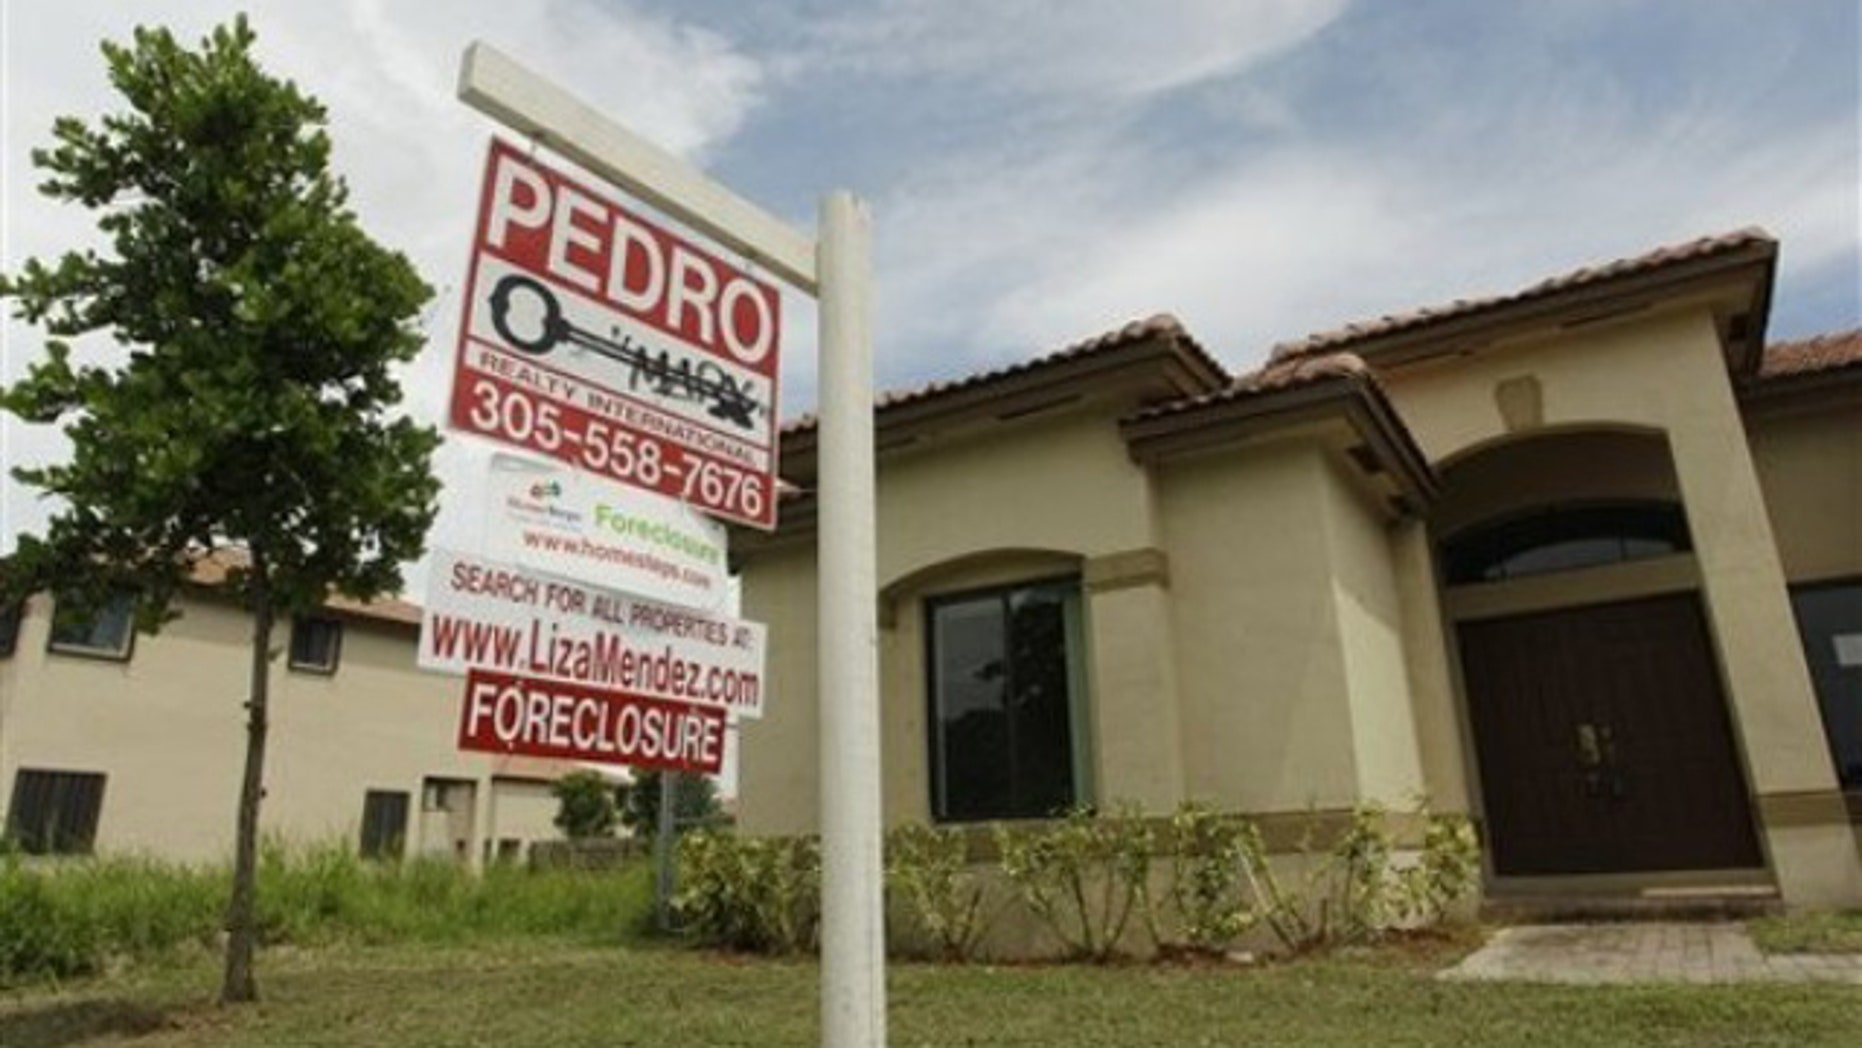 Sept. 14: A foreclosed home sits empty in a Homestead, Fla., neighborhood where half of the houses are empty and up for foreclosure.